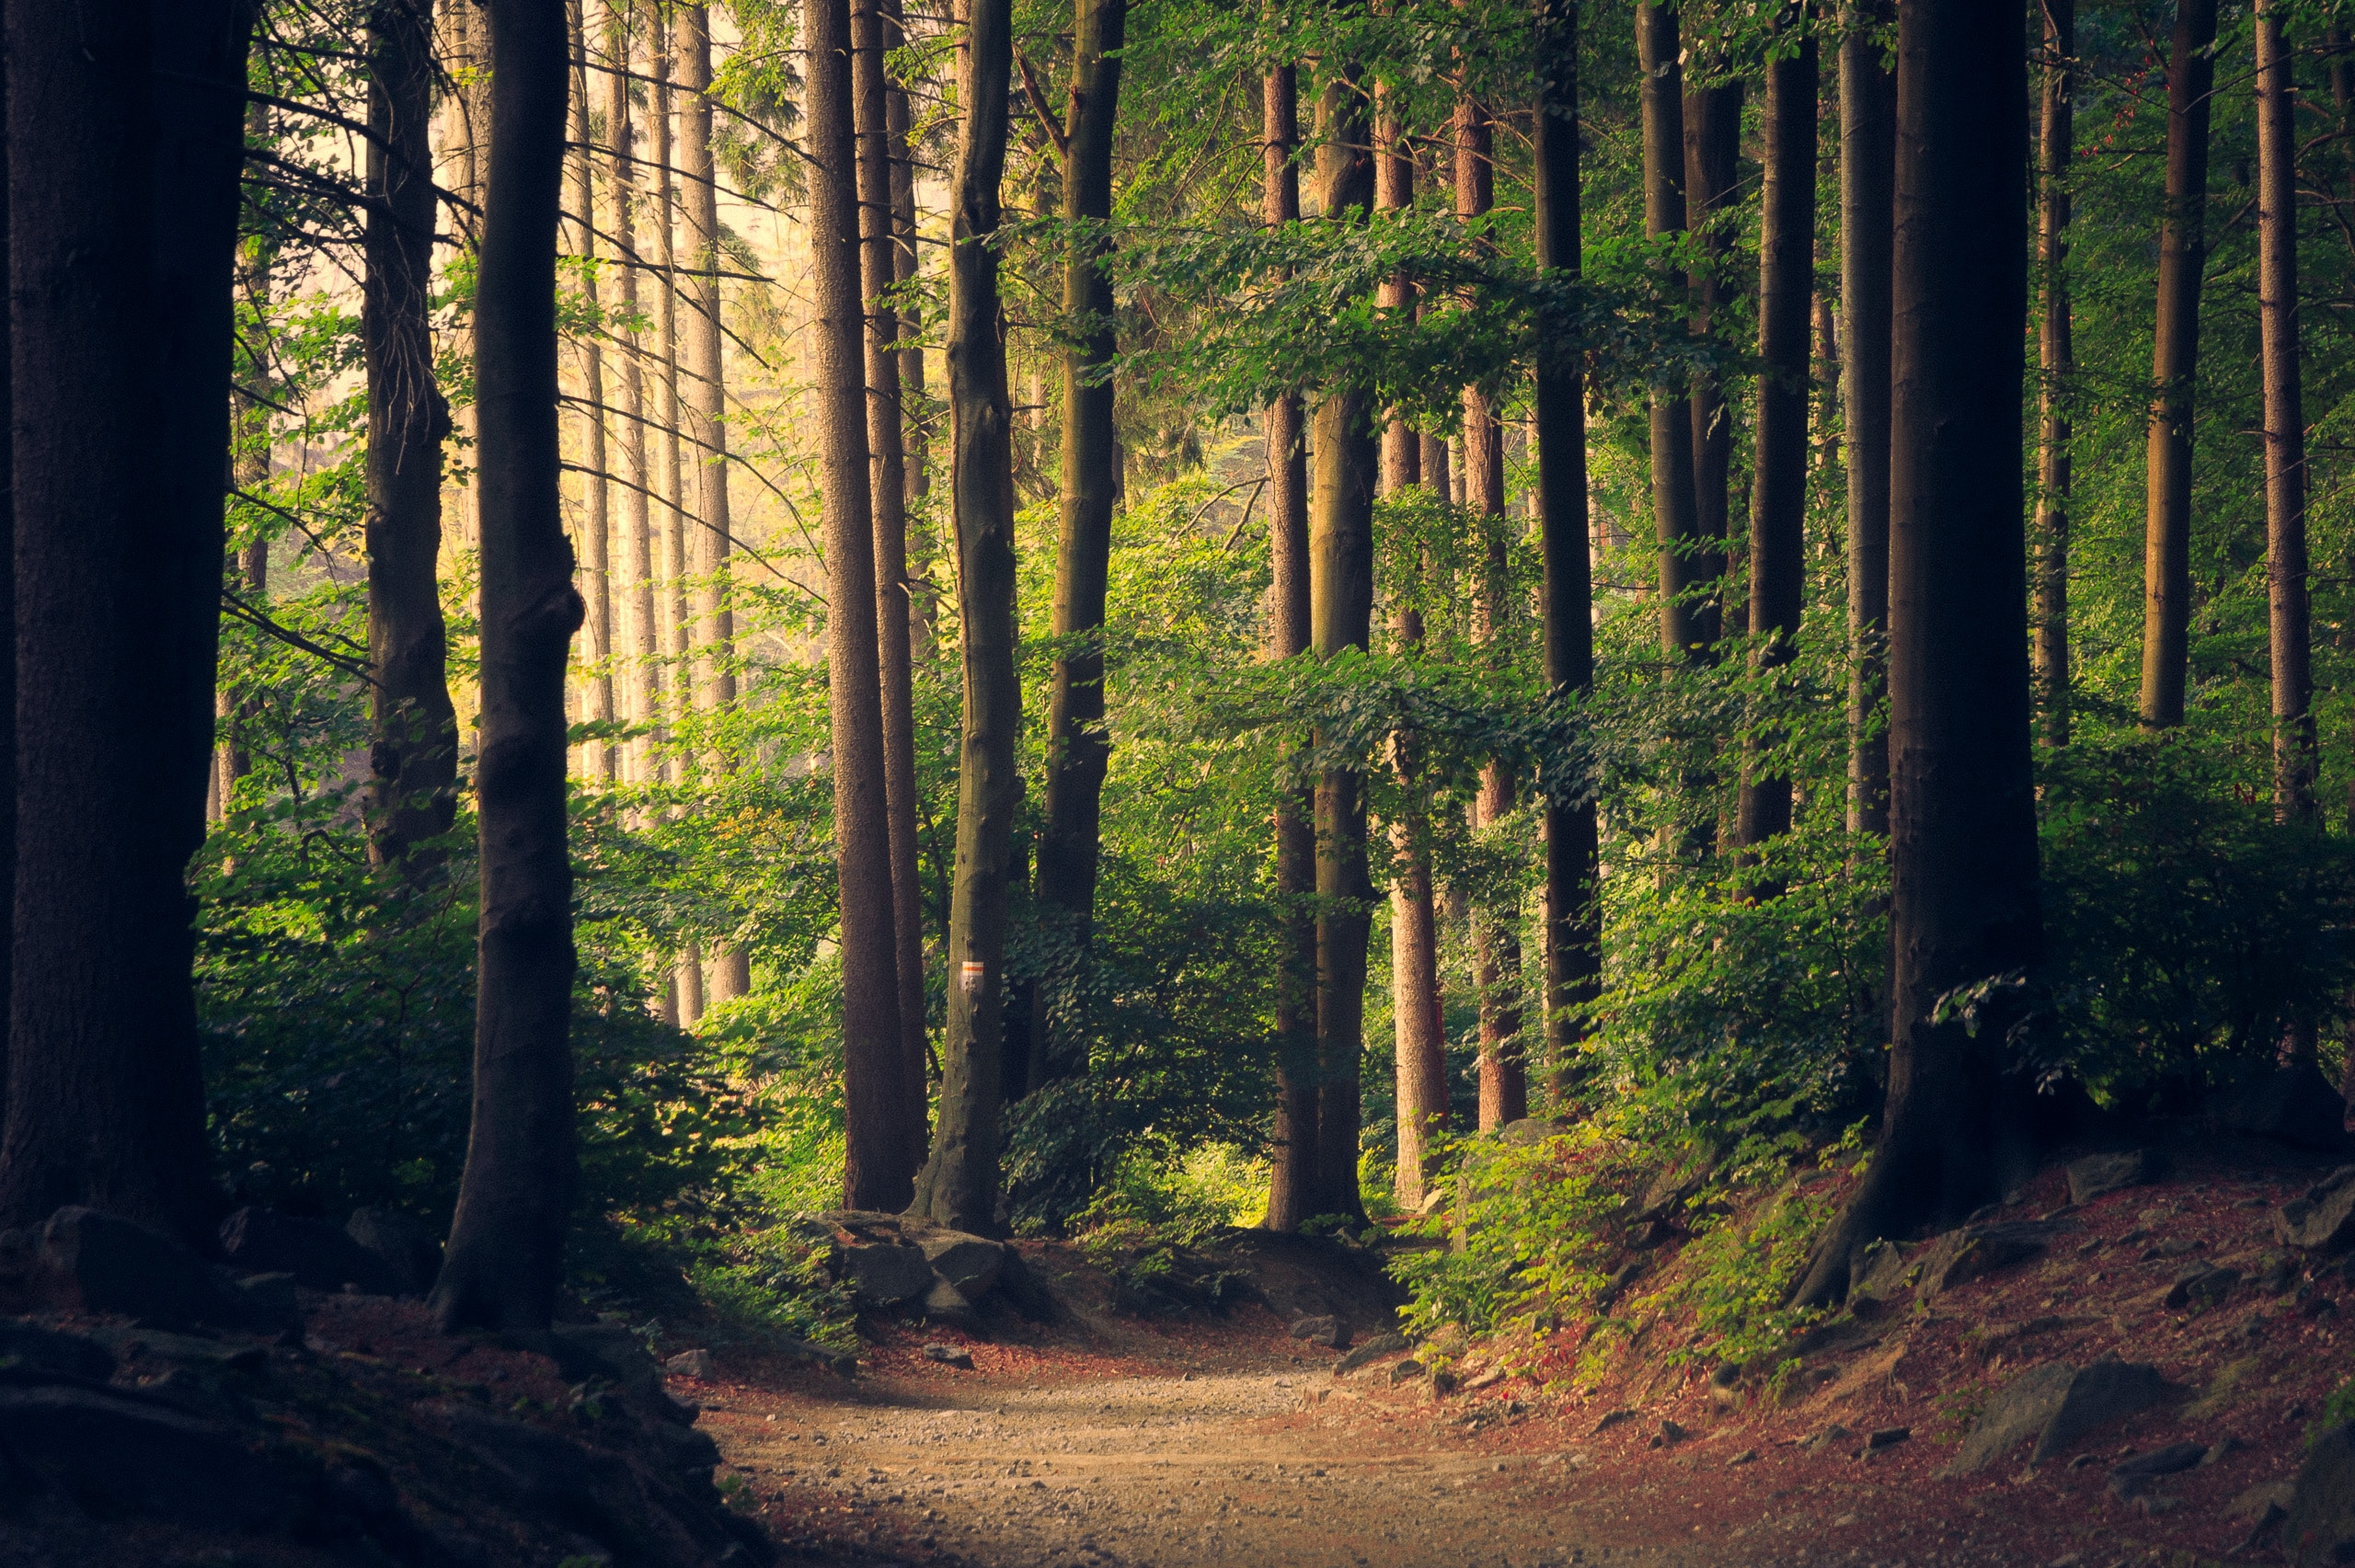 Envirotips: How to Source Wood Sustainably for Your Home